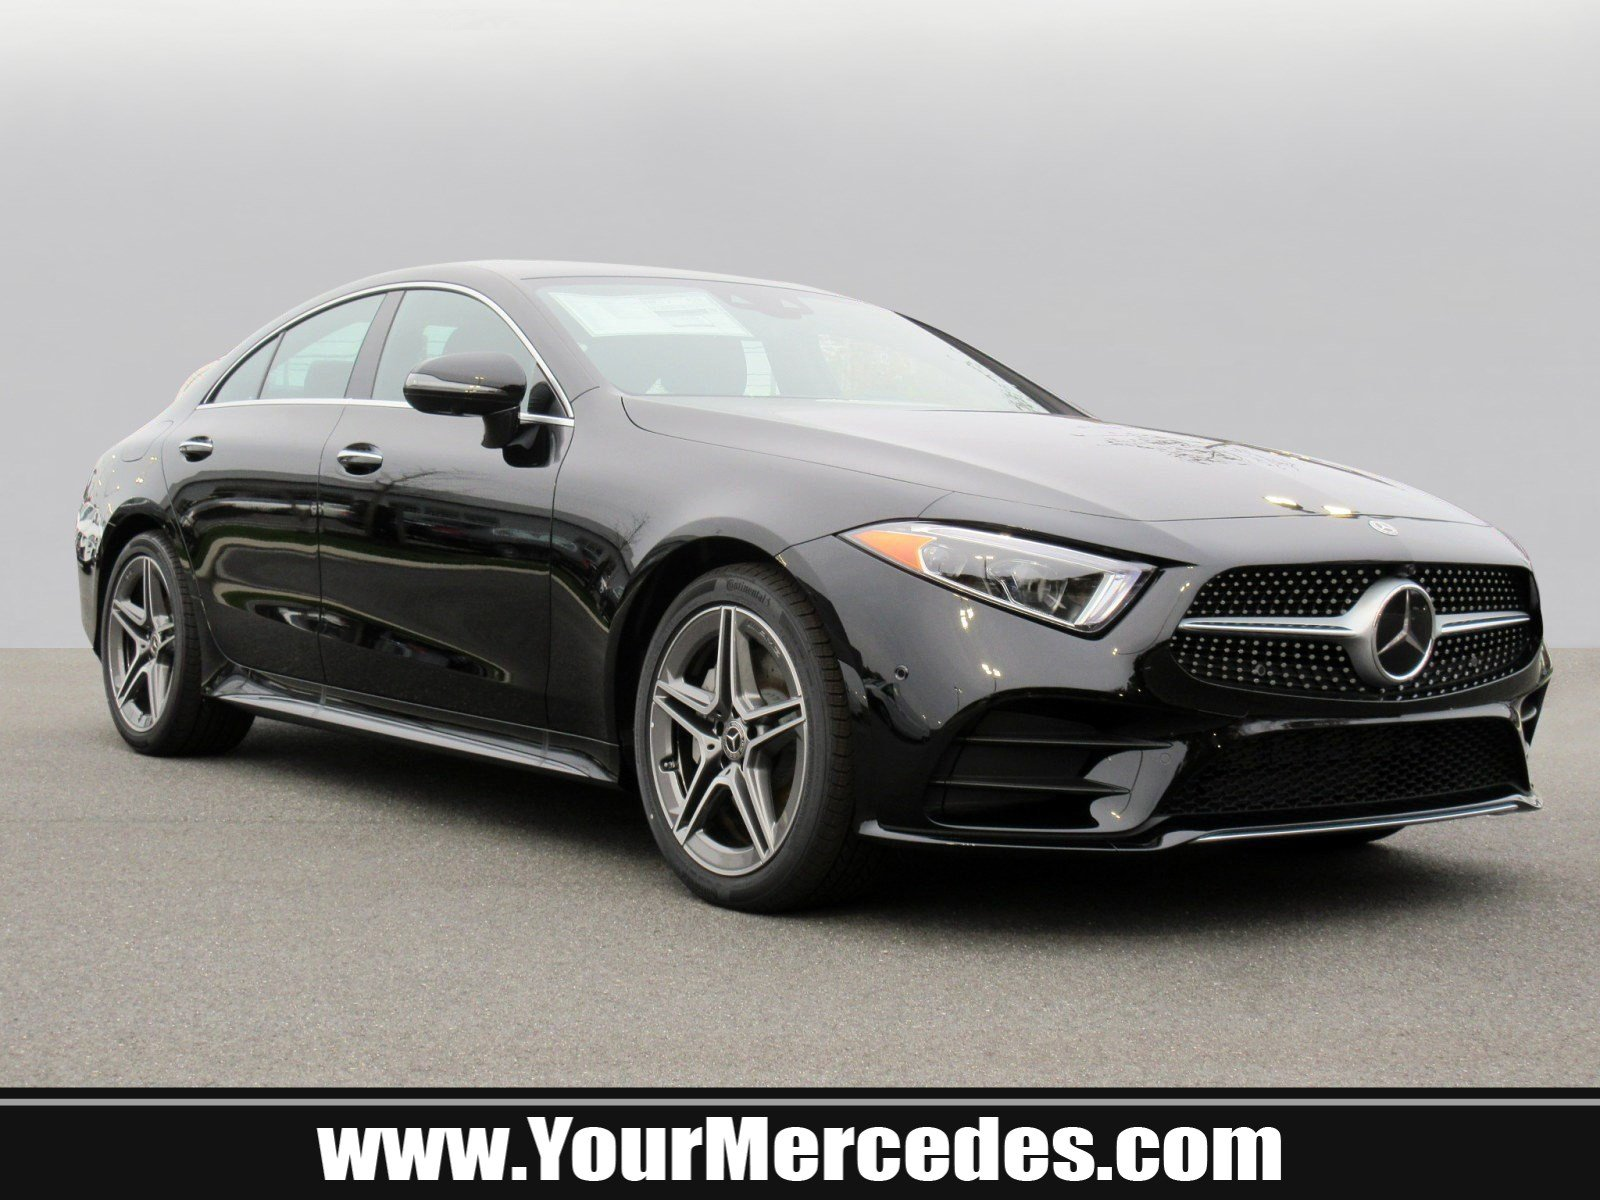 New 2019 Mercedes Benz CLS CLS 450 Coupe in Egg Harbor Township